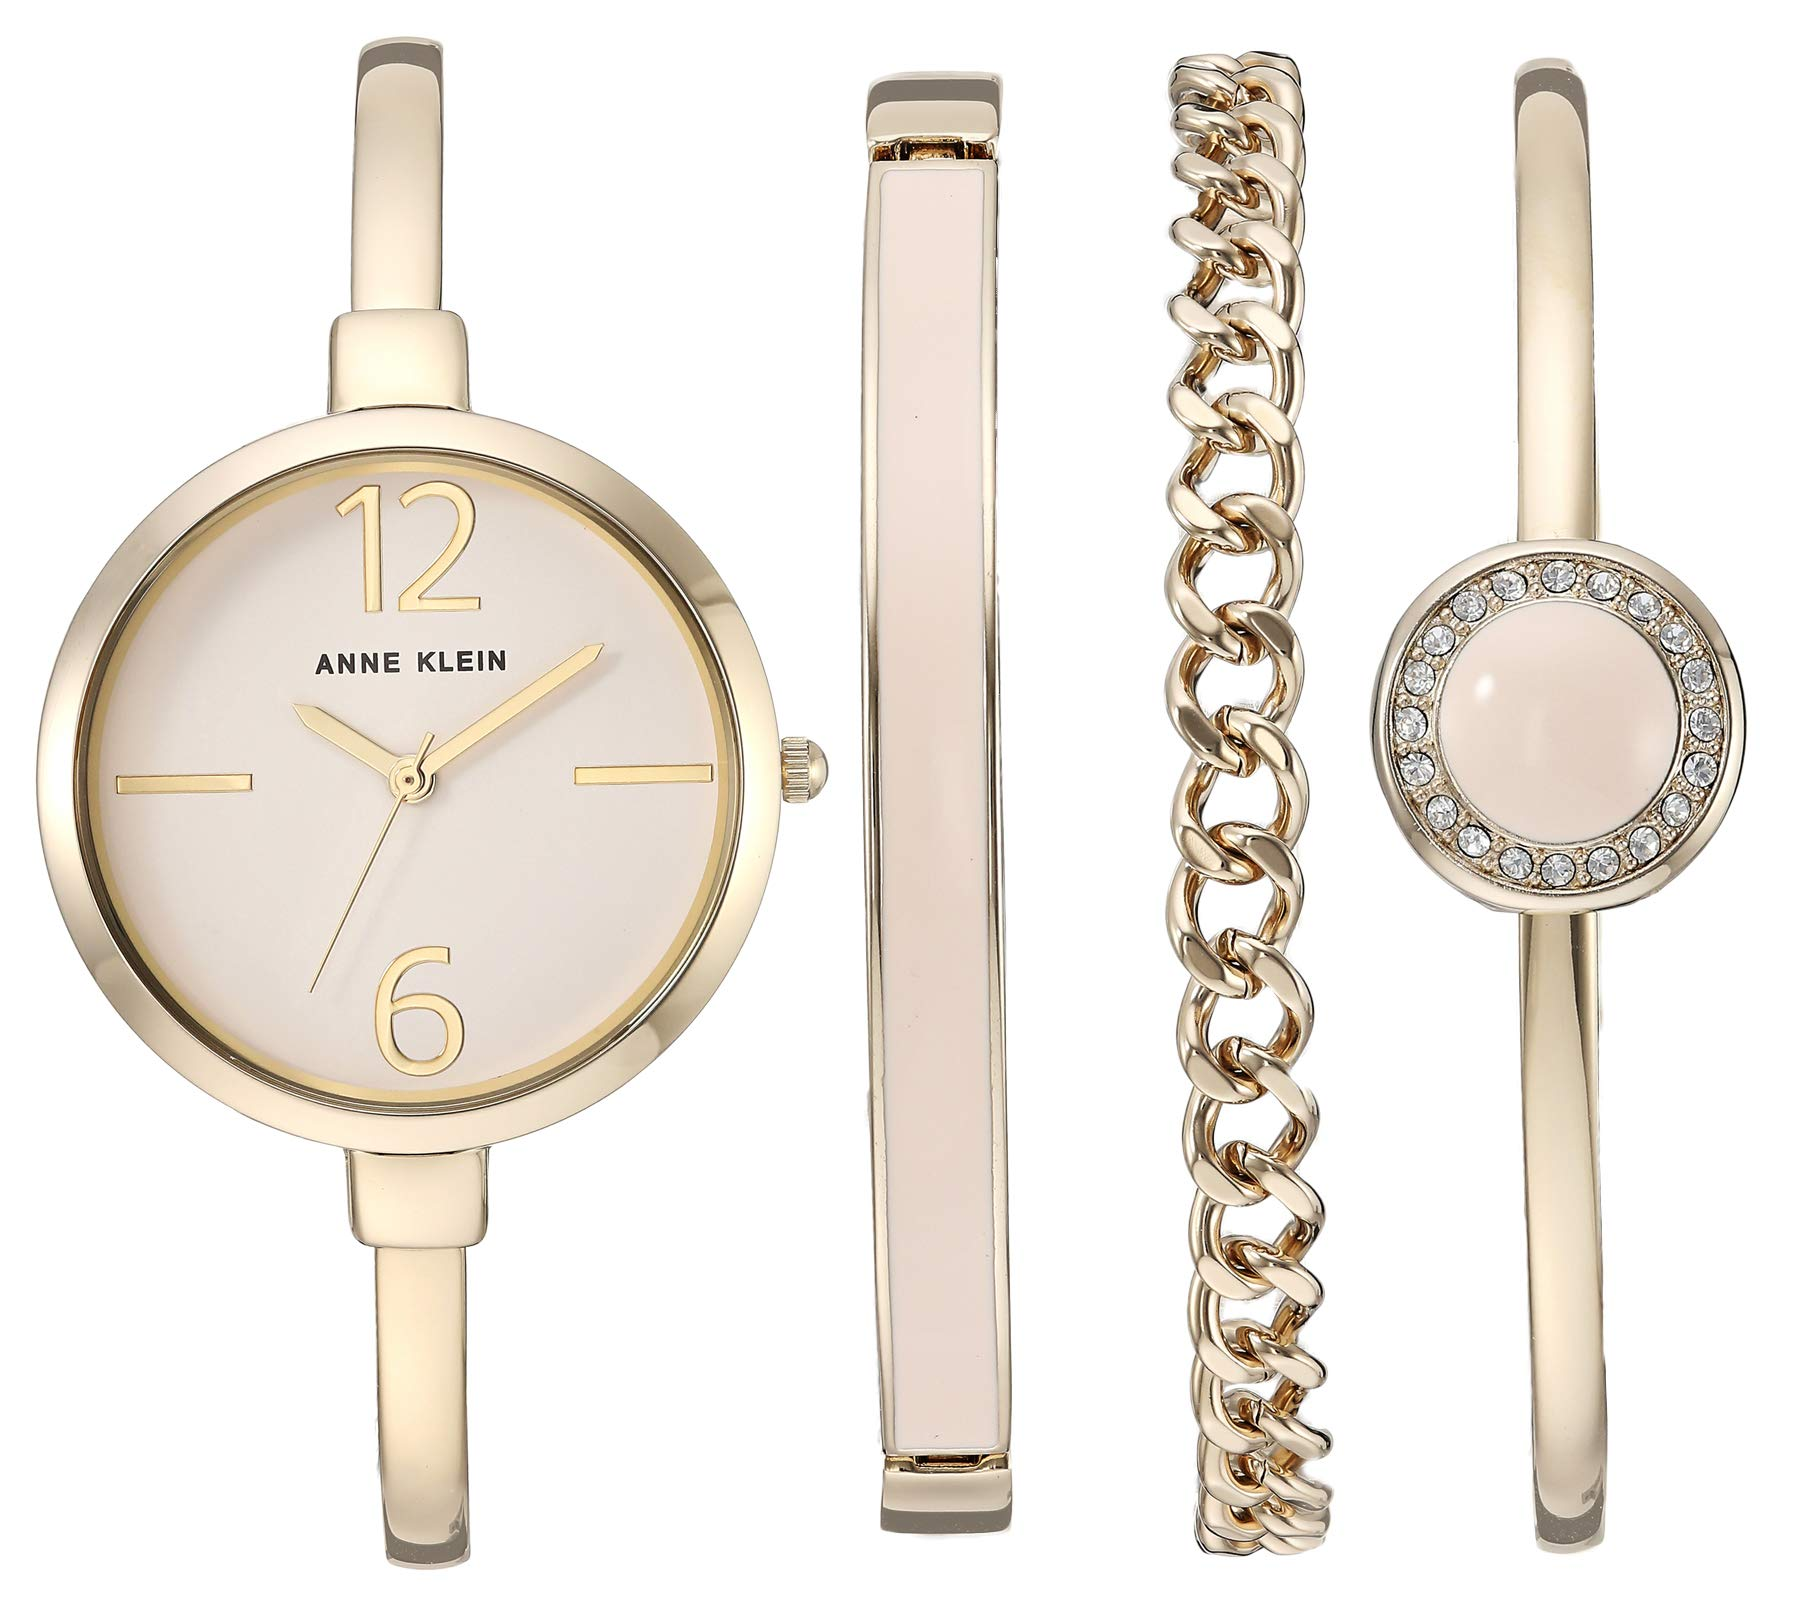 Anne Klein Women's AK/3290LPST Gold-Tone Bangle Watch and Swarovski Crystal Accented Bracelet Set by Anne Klein